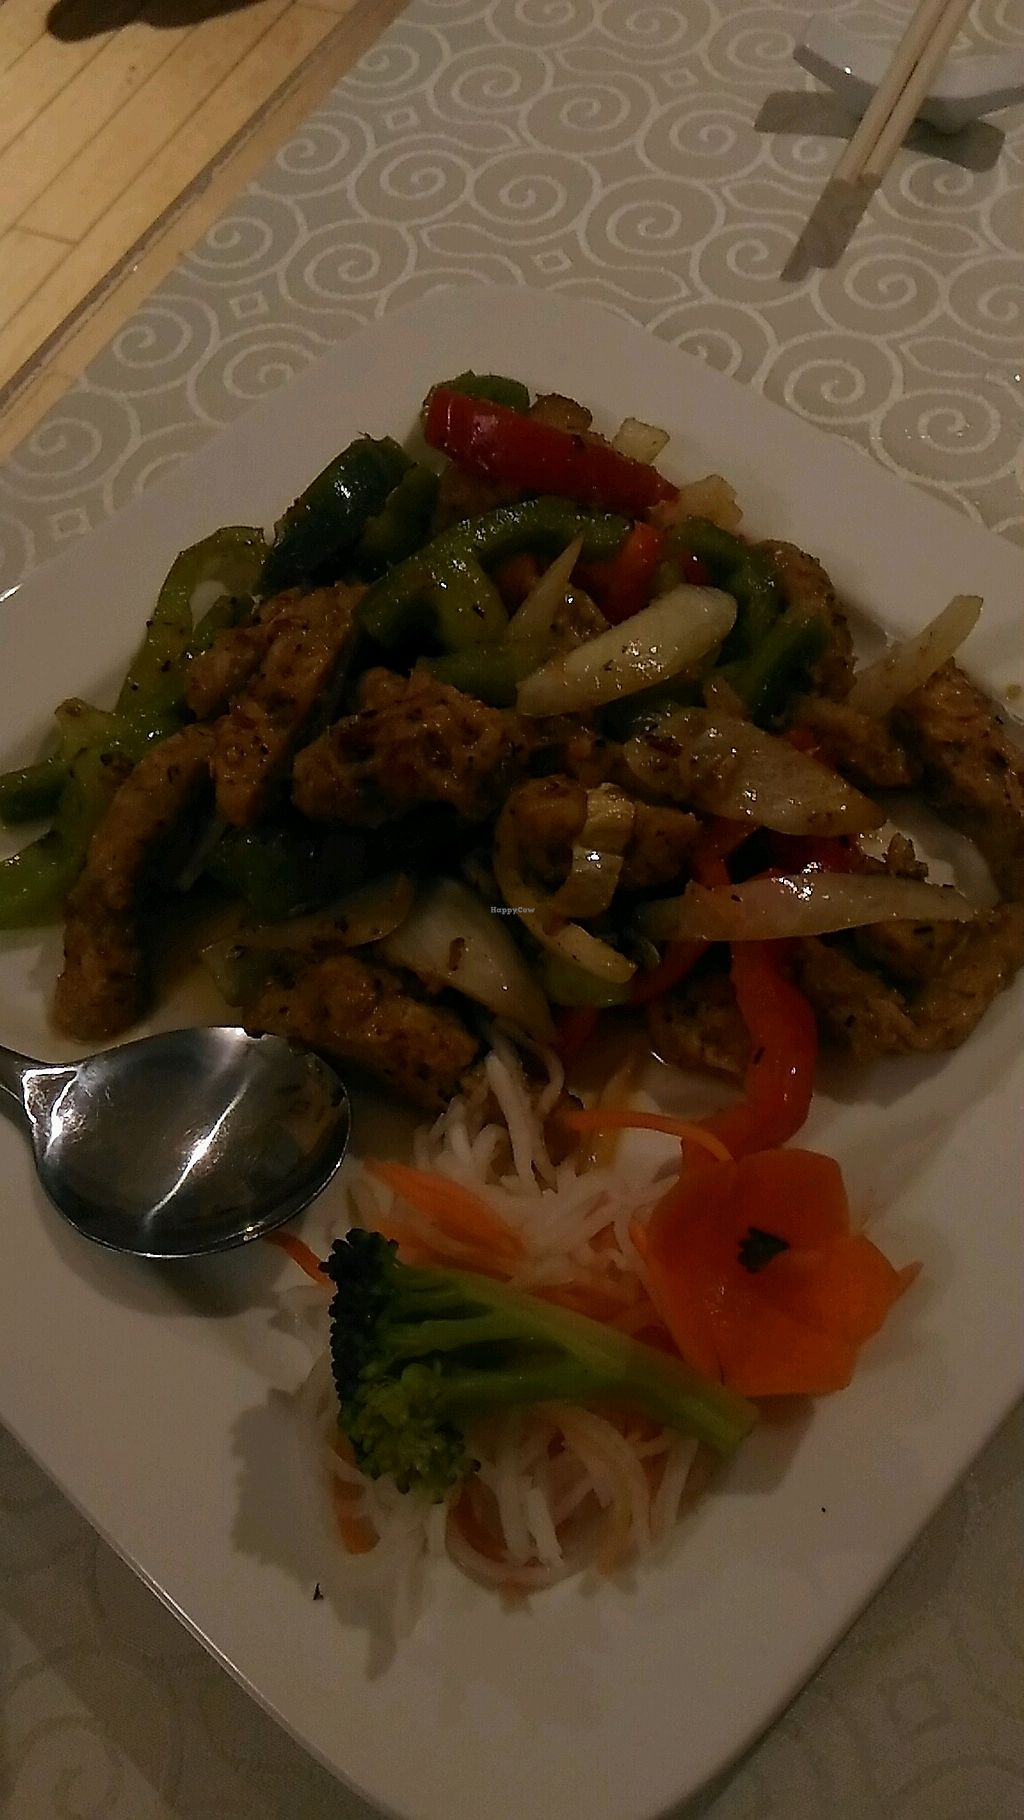 """Photo of Veggie Vietnam Restaurant  by <a href=""""/members/profile/QuothTheRaven"""">QuothTheRaven</a> <br/>yum <br/> November 2, 2017  - <a href='/contact/abuse/image/73824/321011'>Report</a>"""